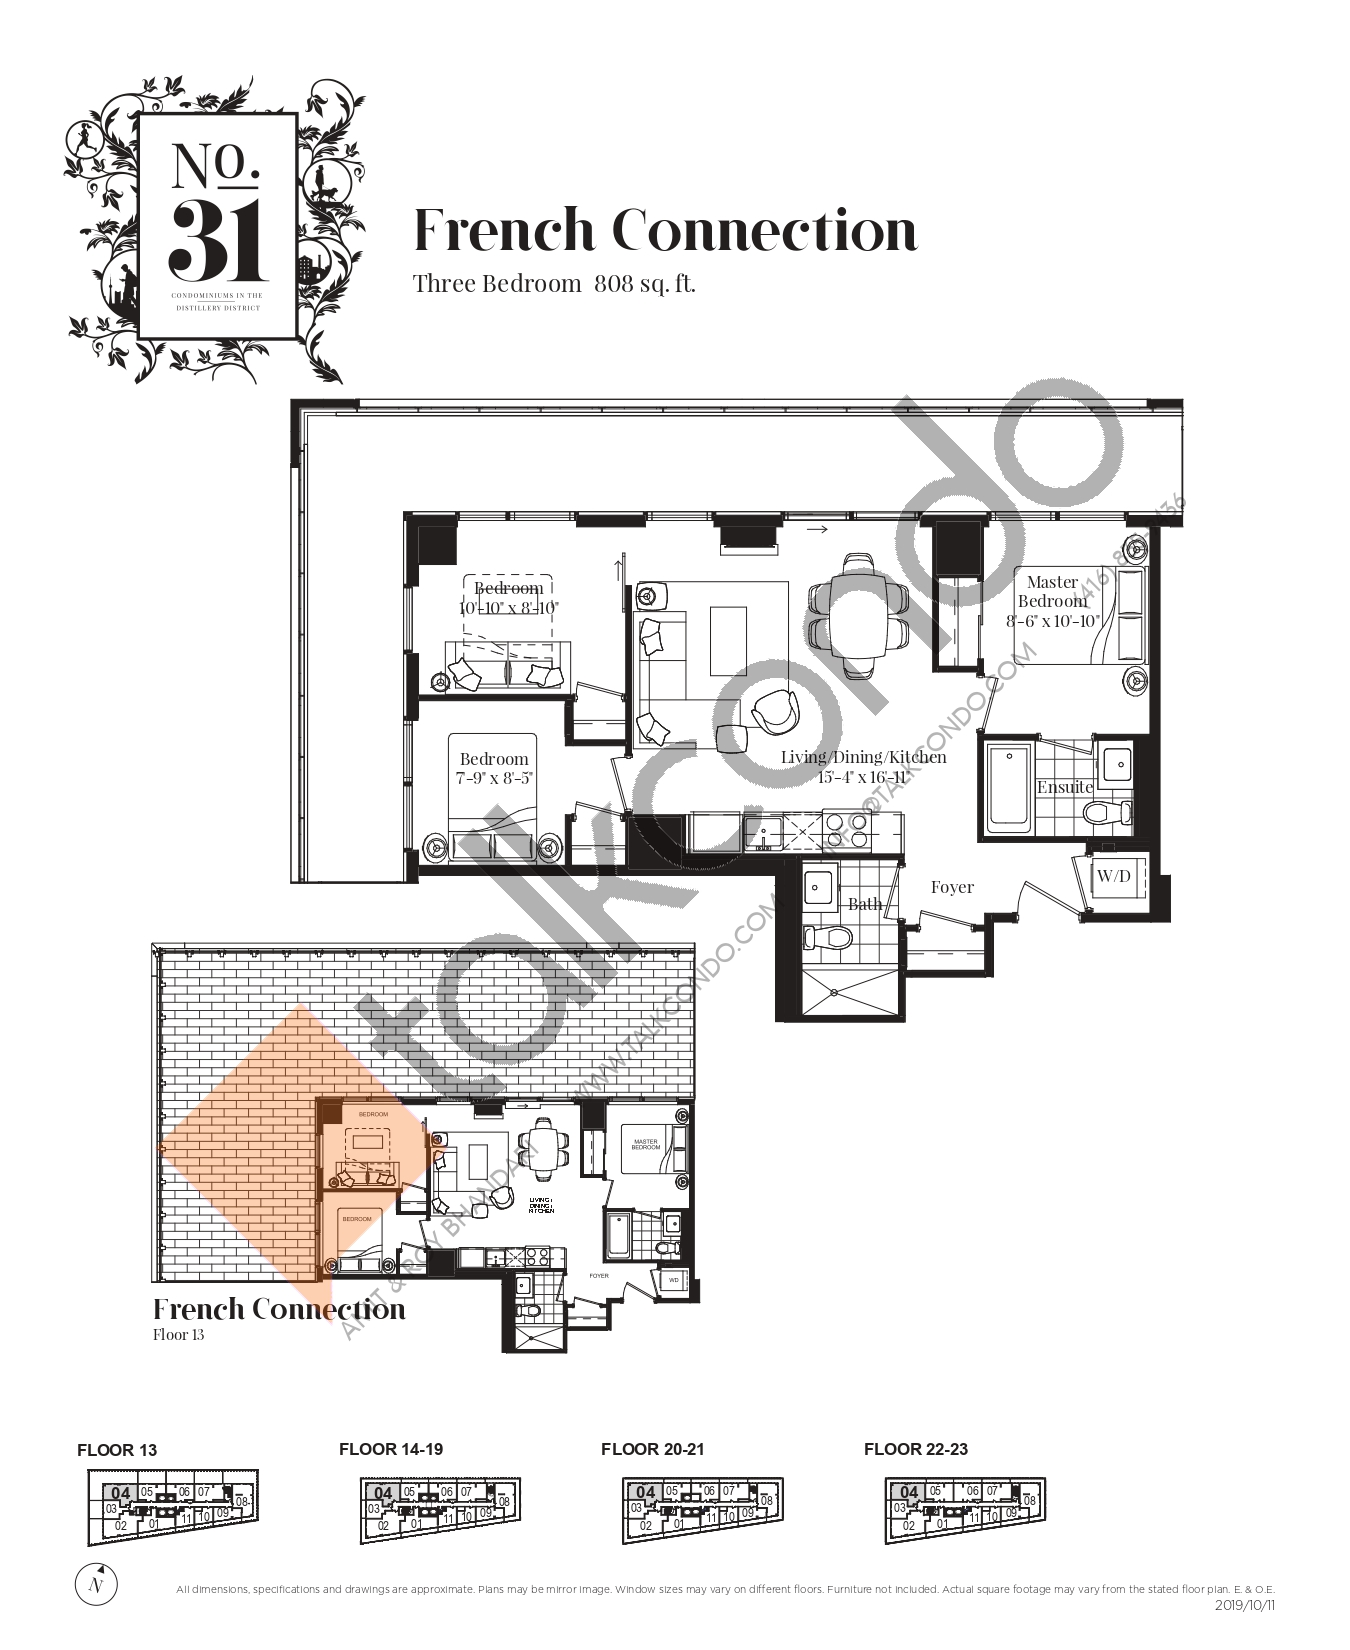 French Connection Floor Plan at No. 31 Condos - 808 sq.ft